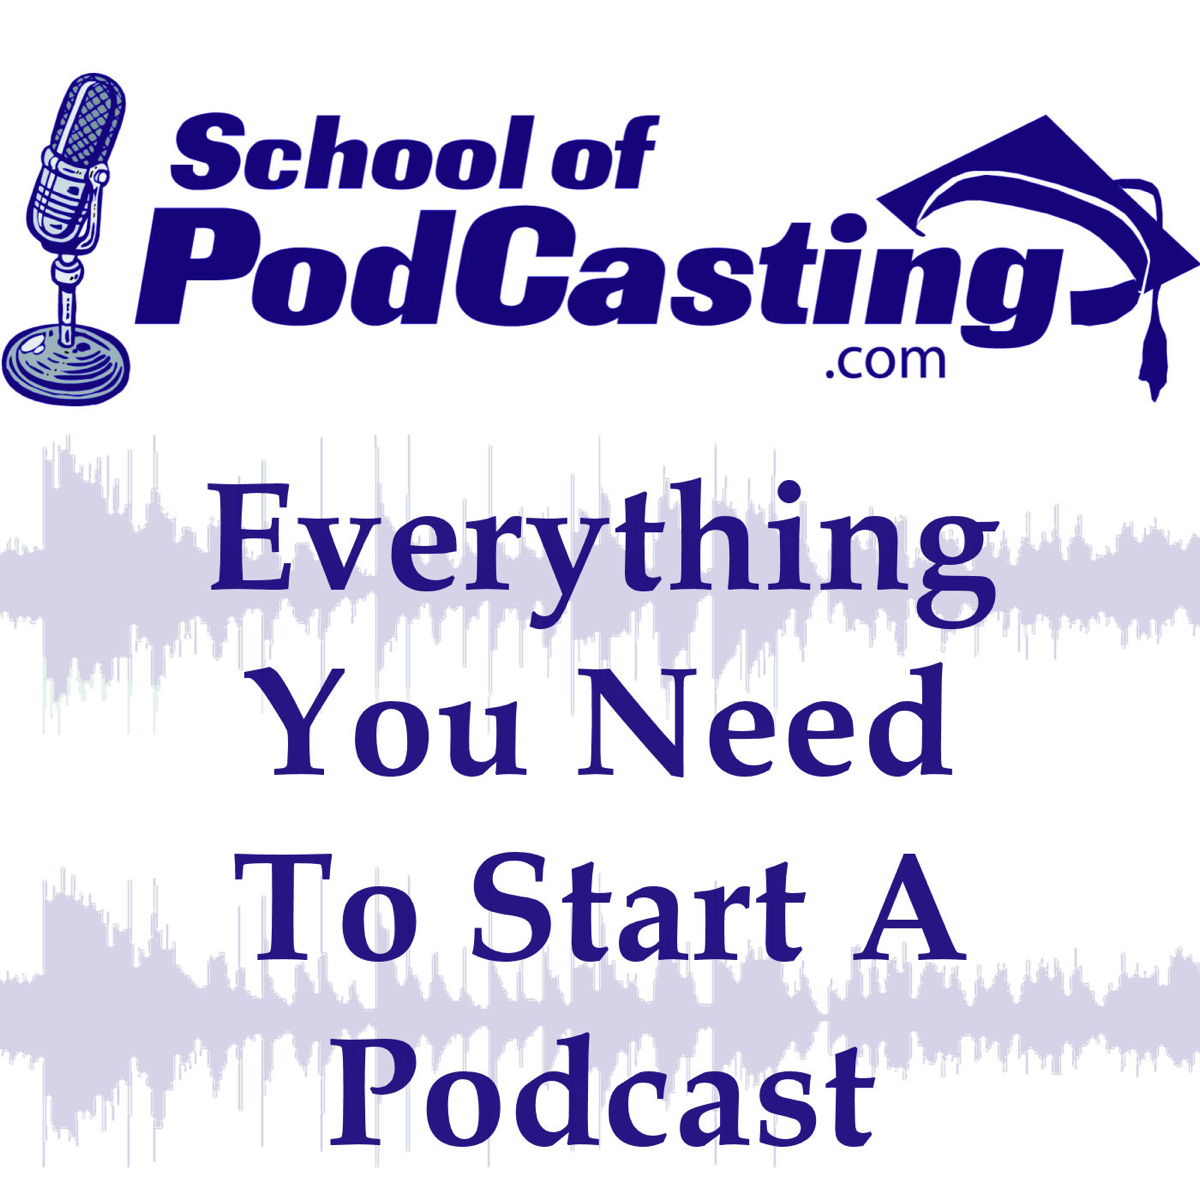 Best episodes of school of podcasting learn to plan start and best episodes of school of podcasting learn to plan start and grow your podcast on podyssey podcasts fandeluxe Gallery